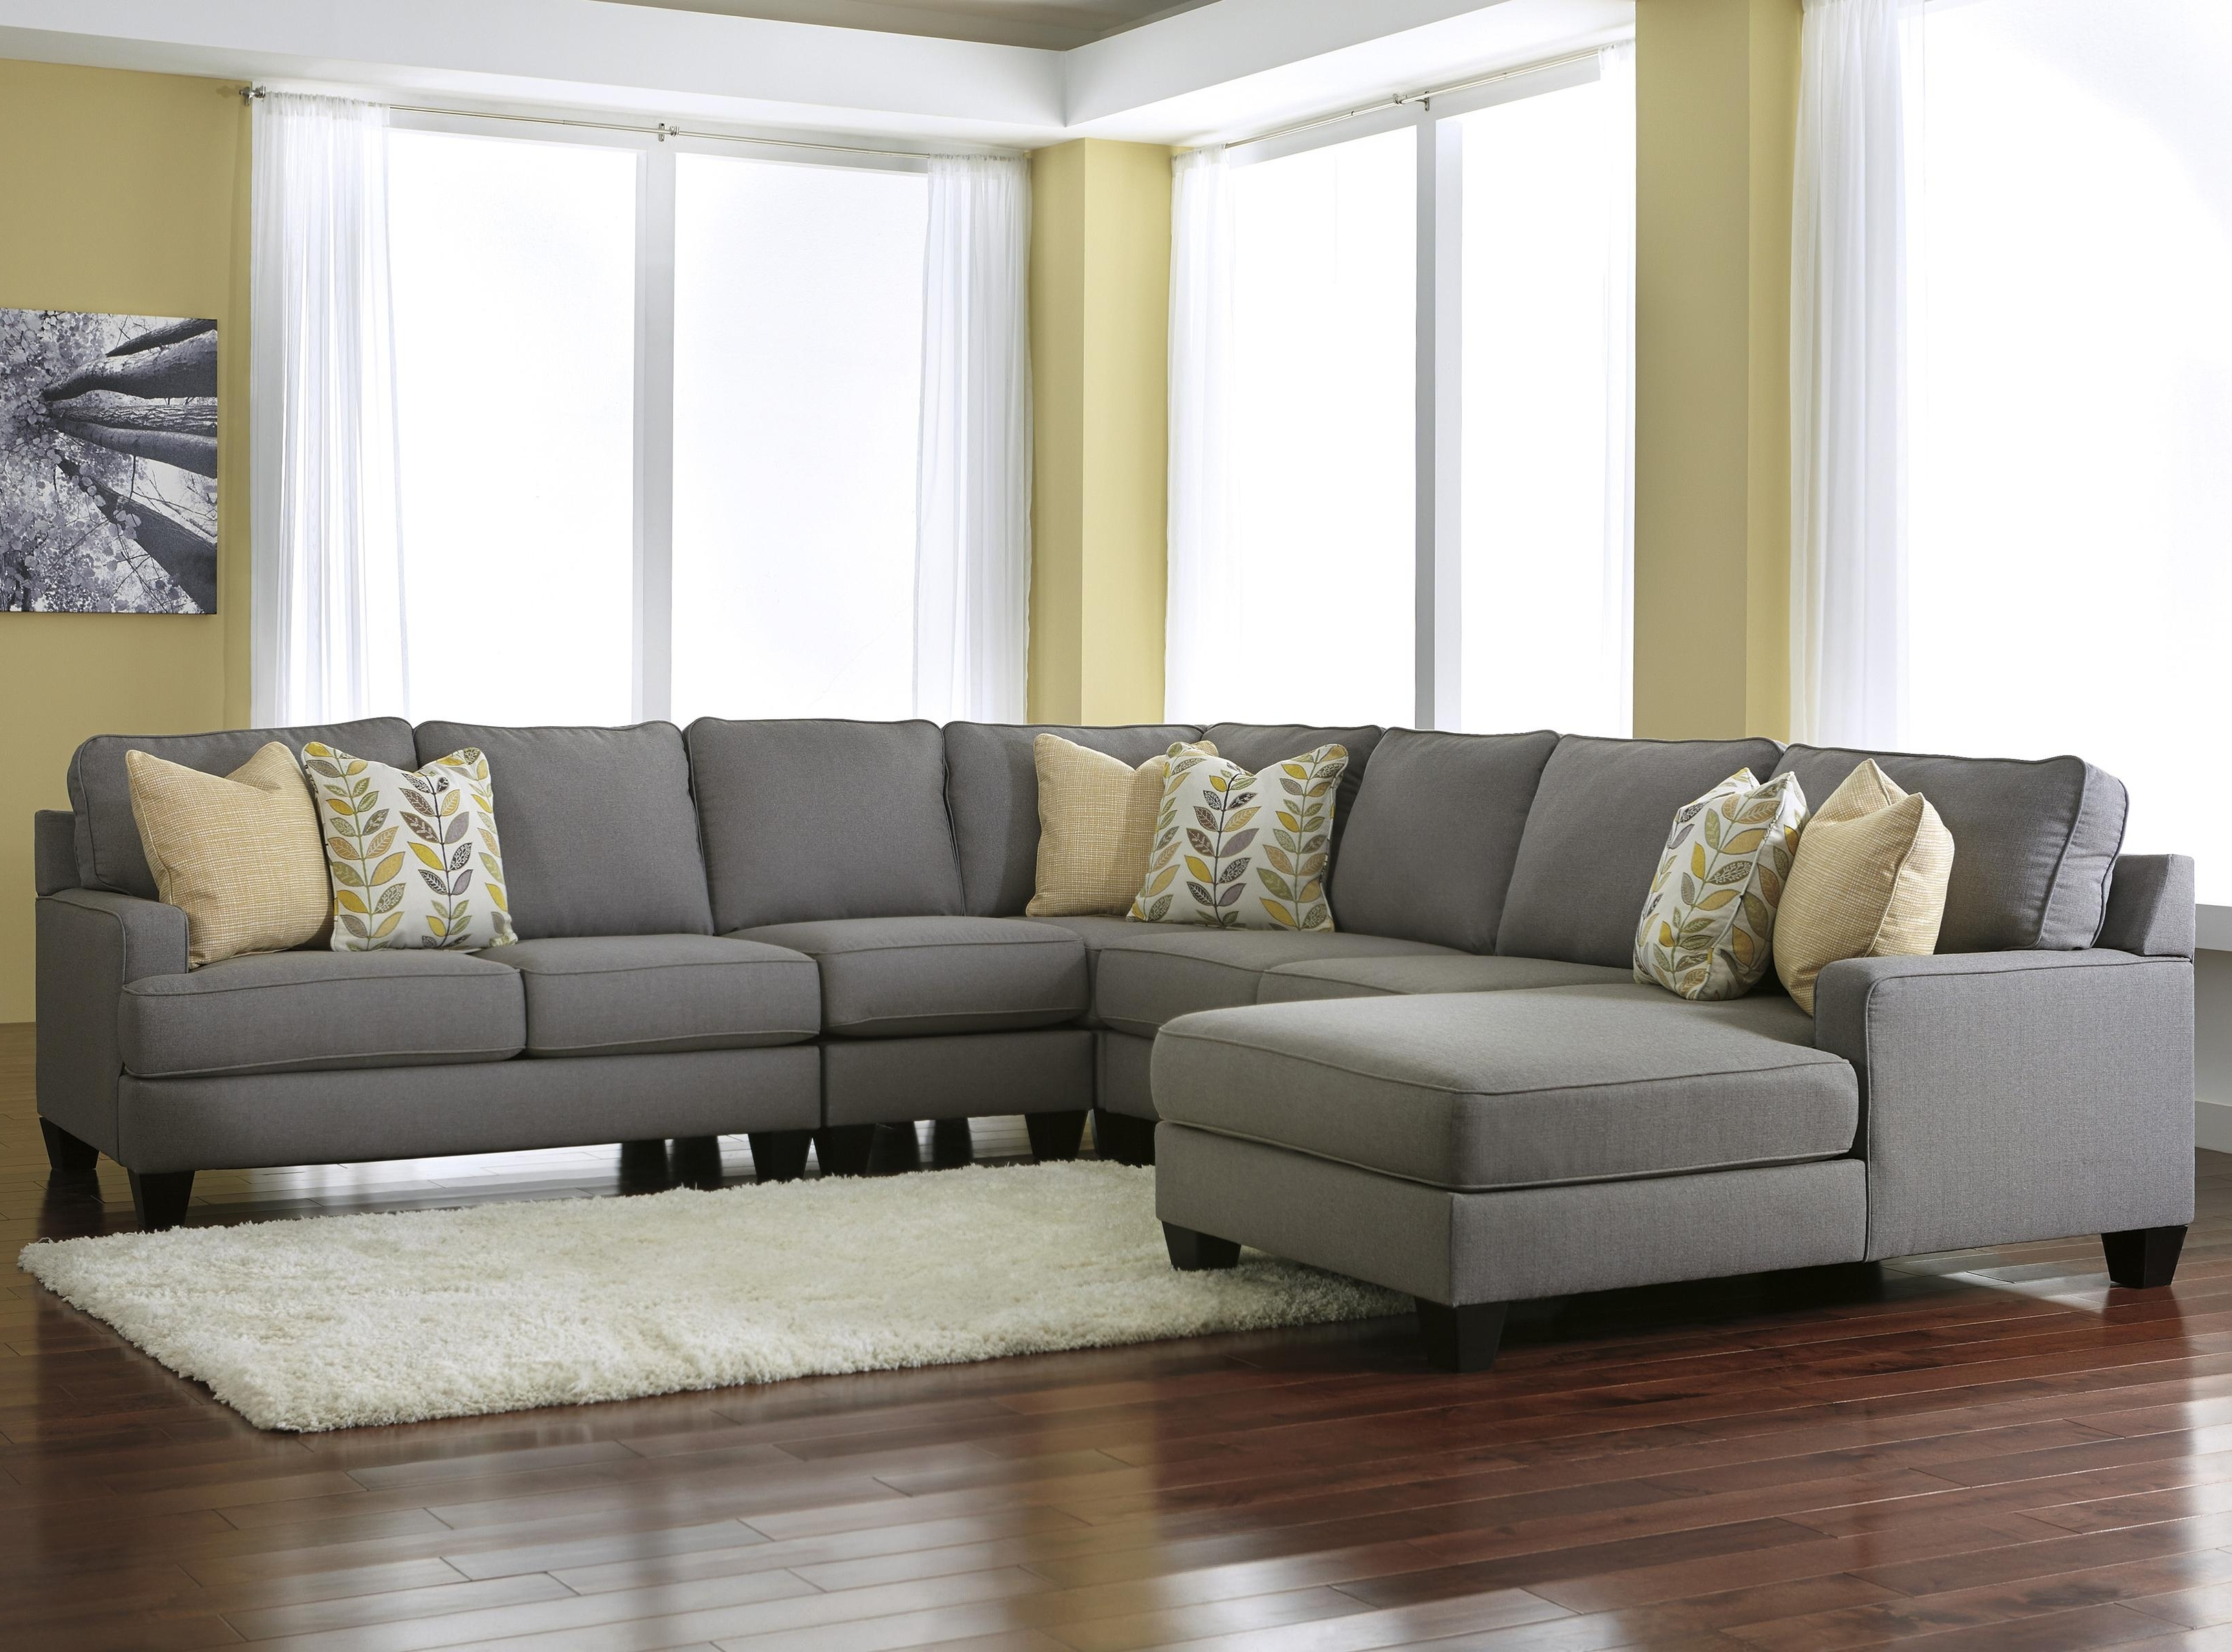 St Cloud Mn Sectional Sofas Regarding Most Up To Date Signature Designashley Chamberly – Alloy Modern 5 Piece (View 6 of 15)